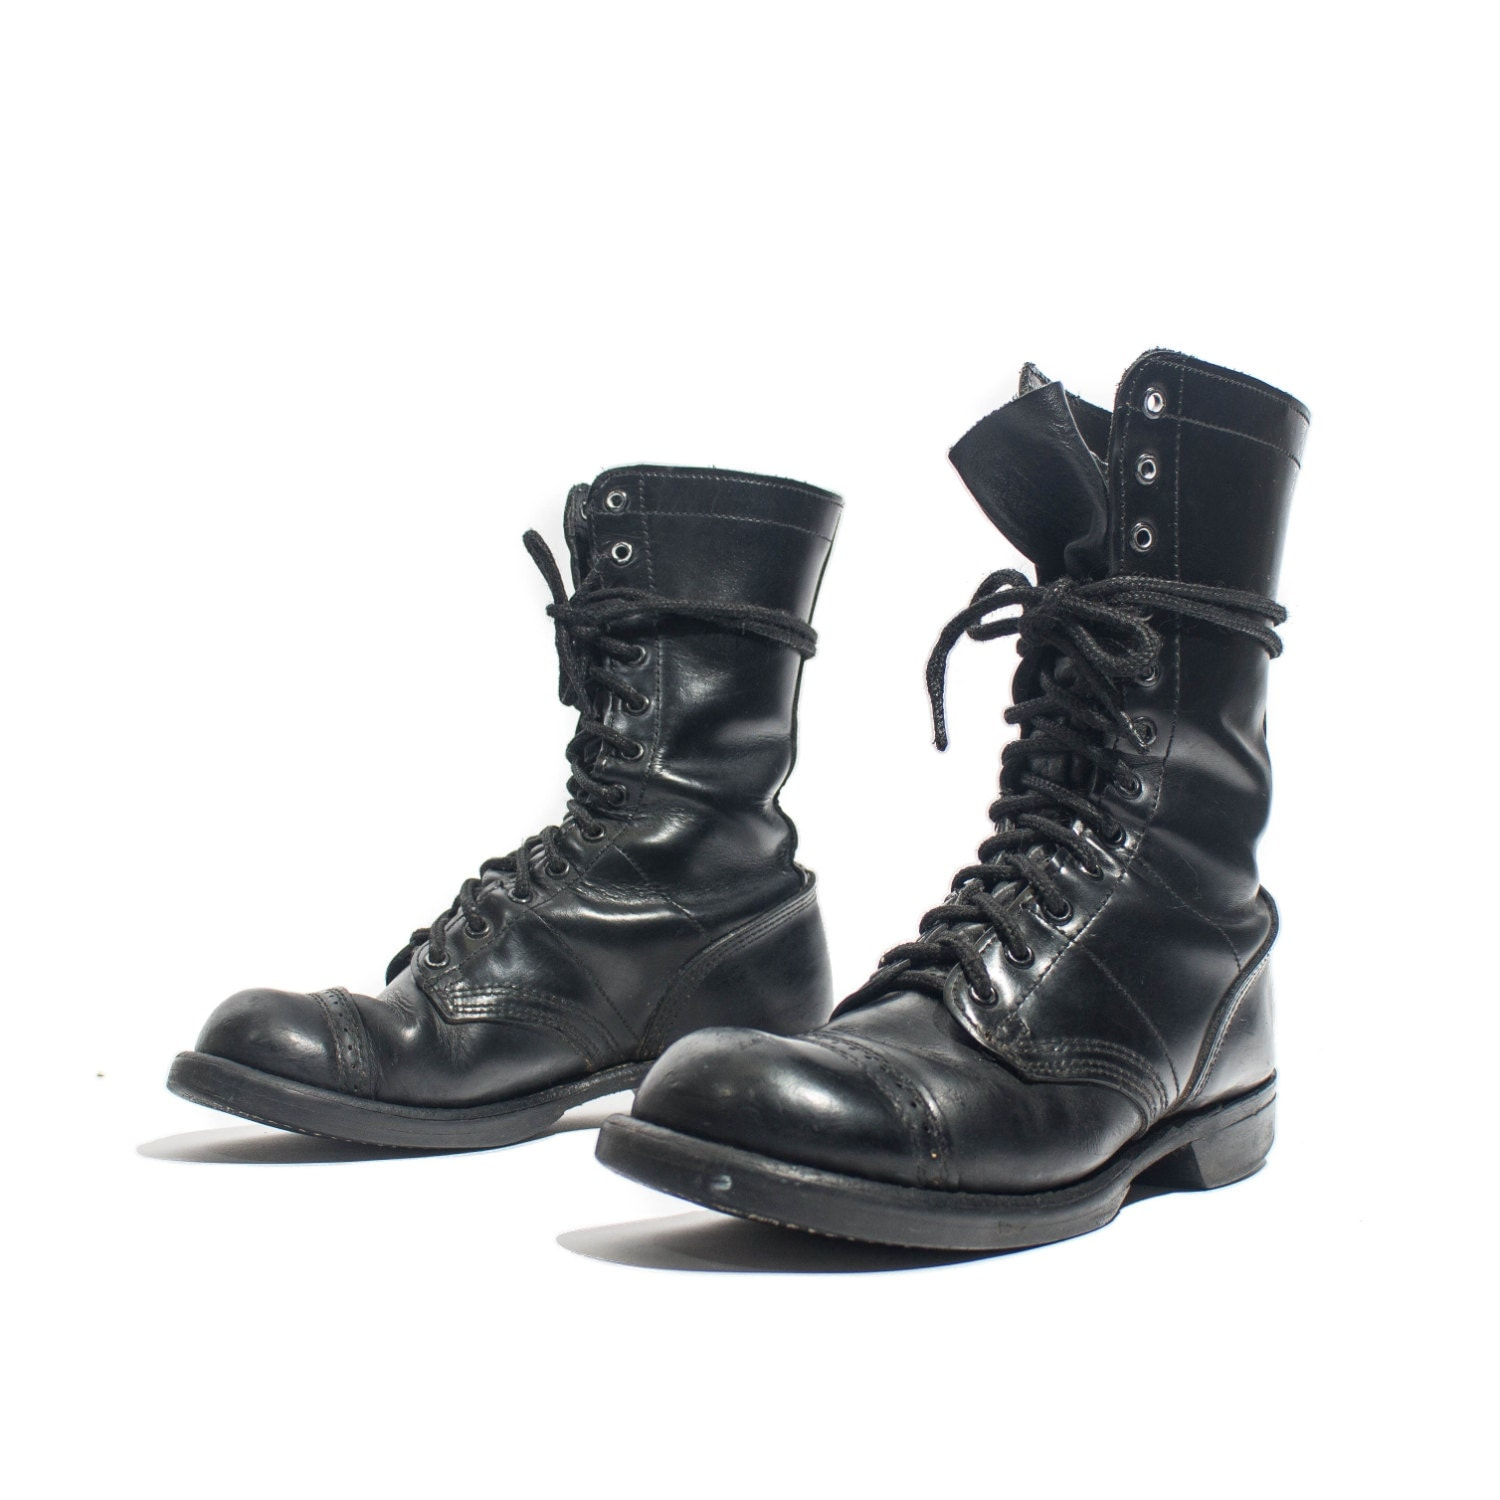 Paratroopers Jump Boots